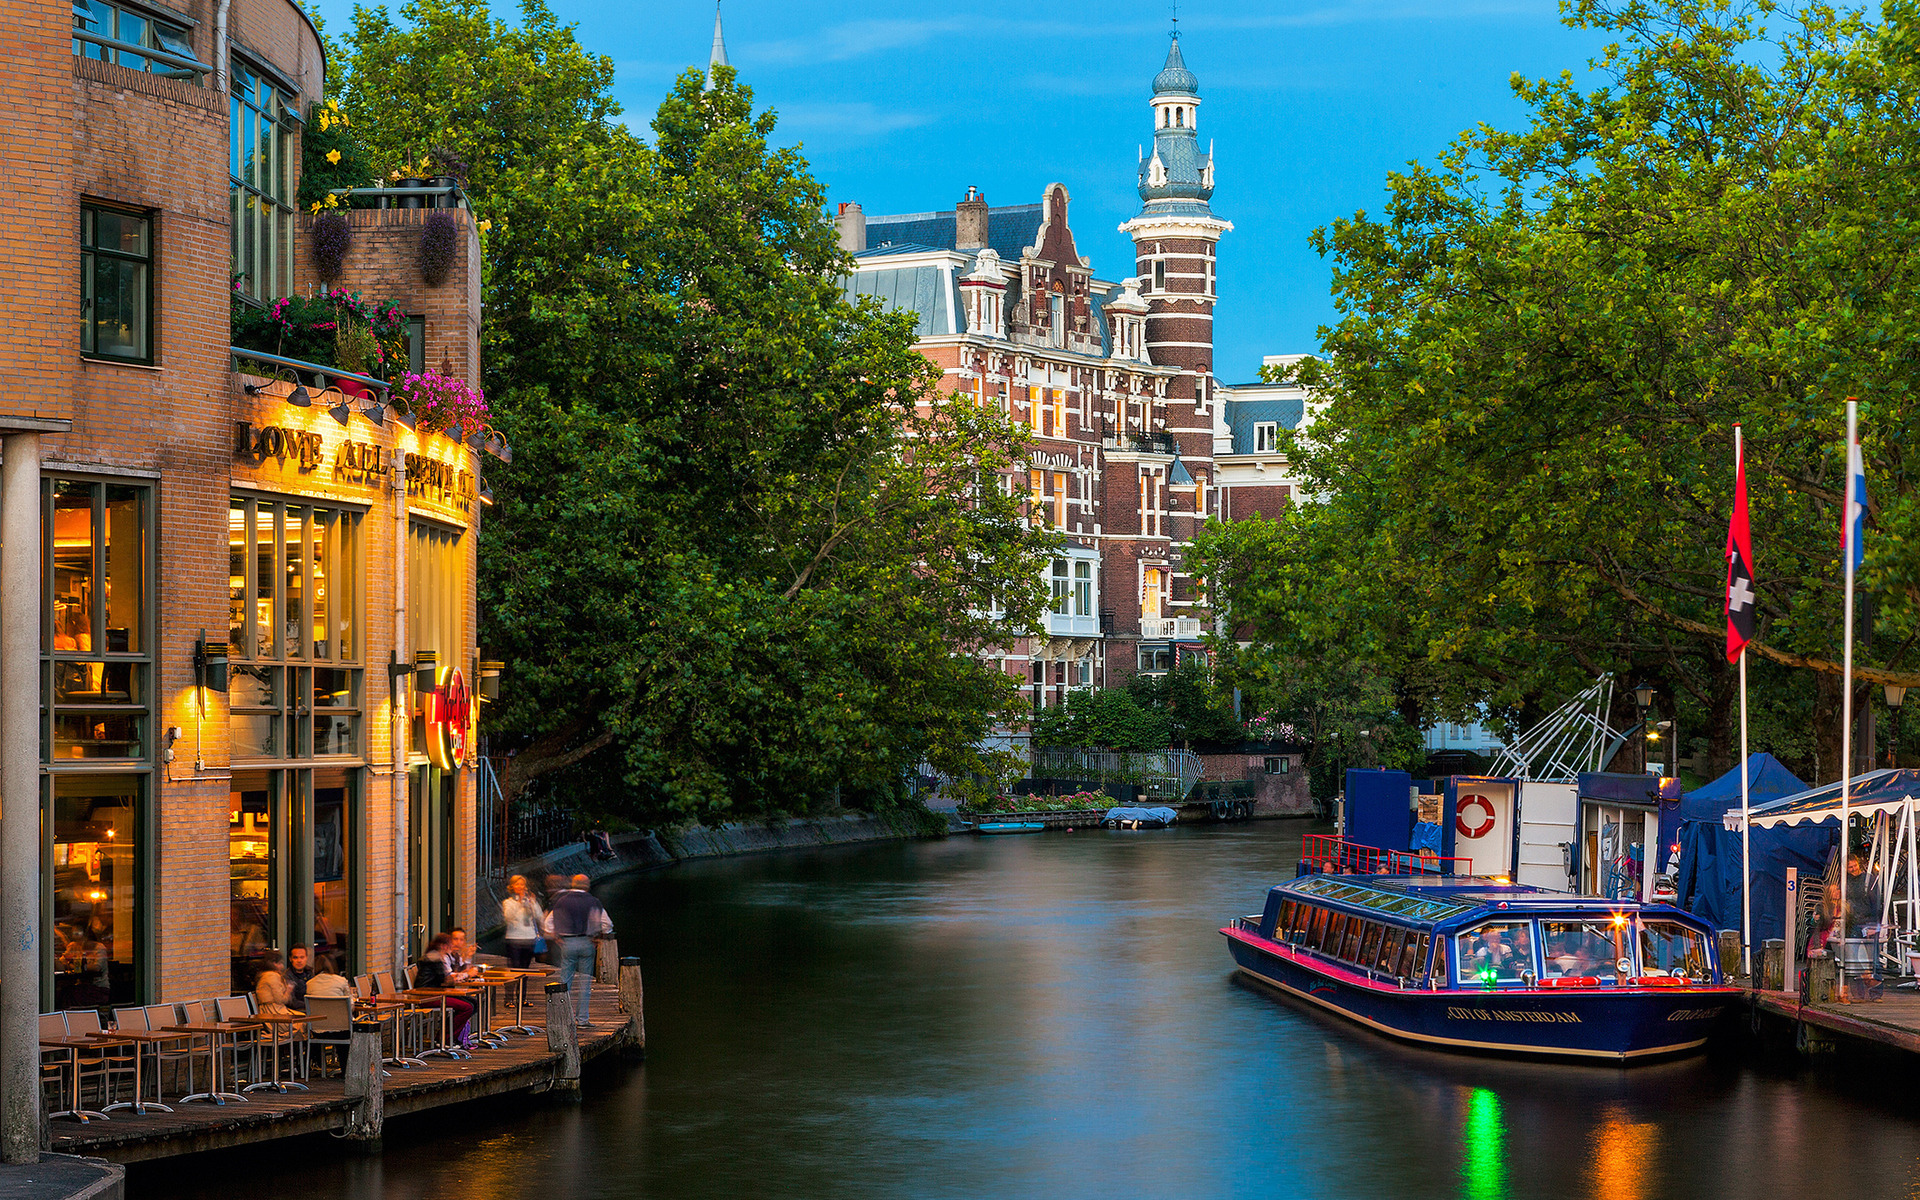 City Of Amsterdam On Amstel River Wallpaper